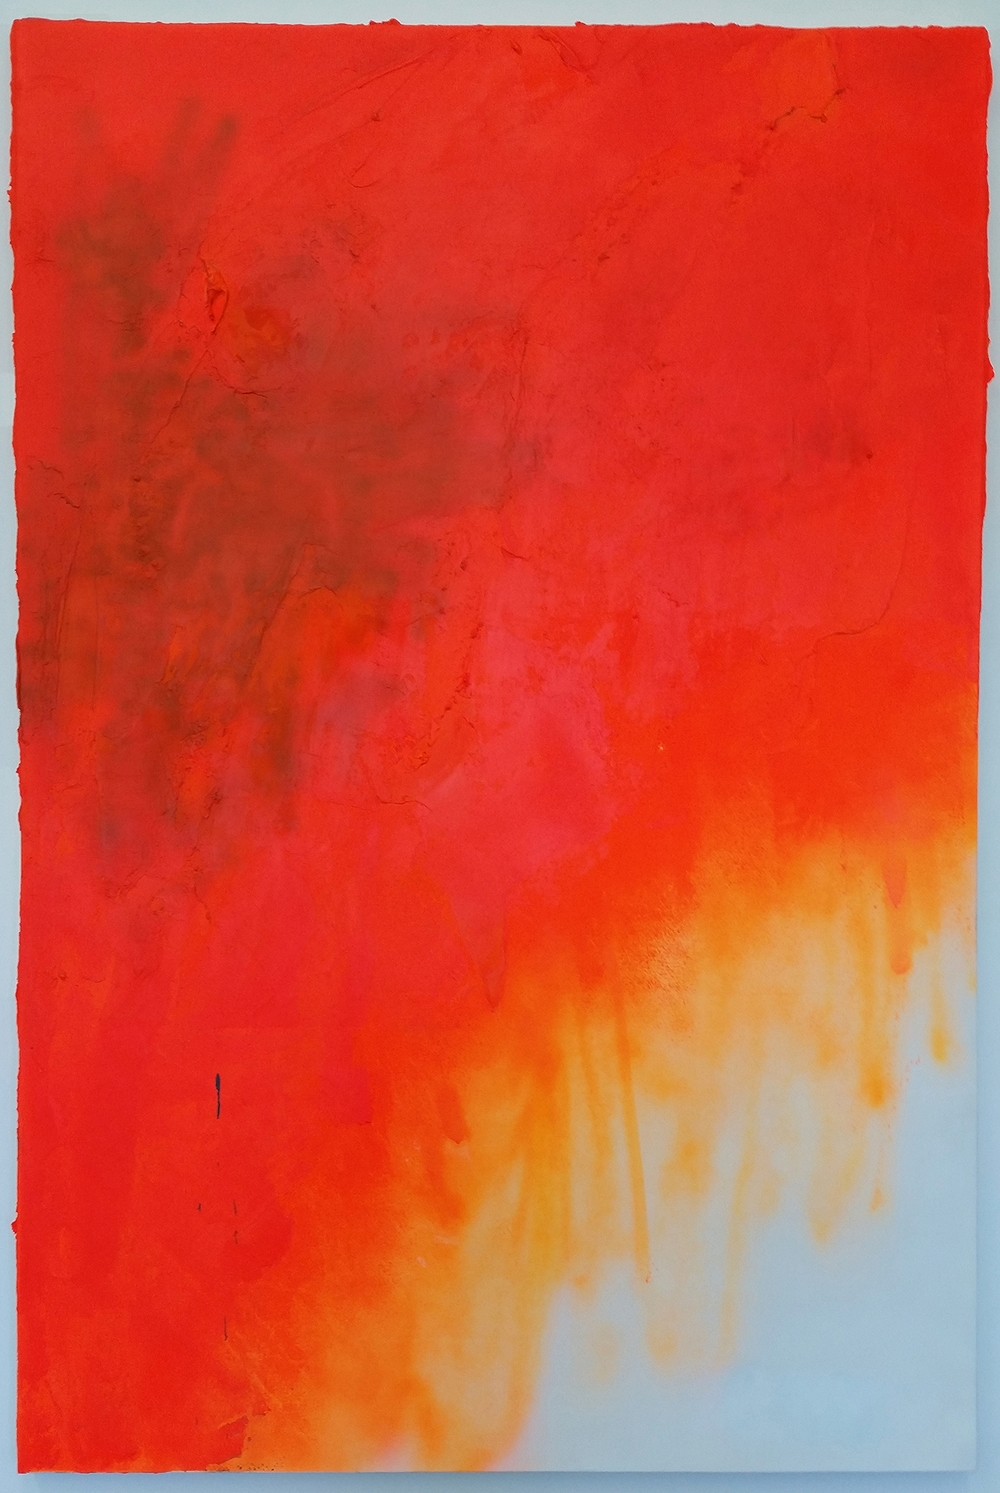 Orange Monochrome, 2014  Oil and Acrylic on canvas  72 x 48 inches